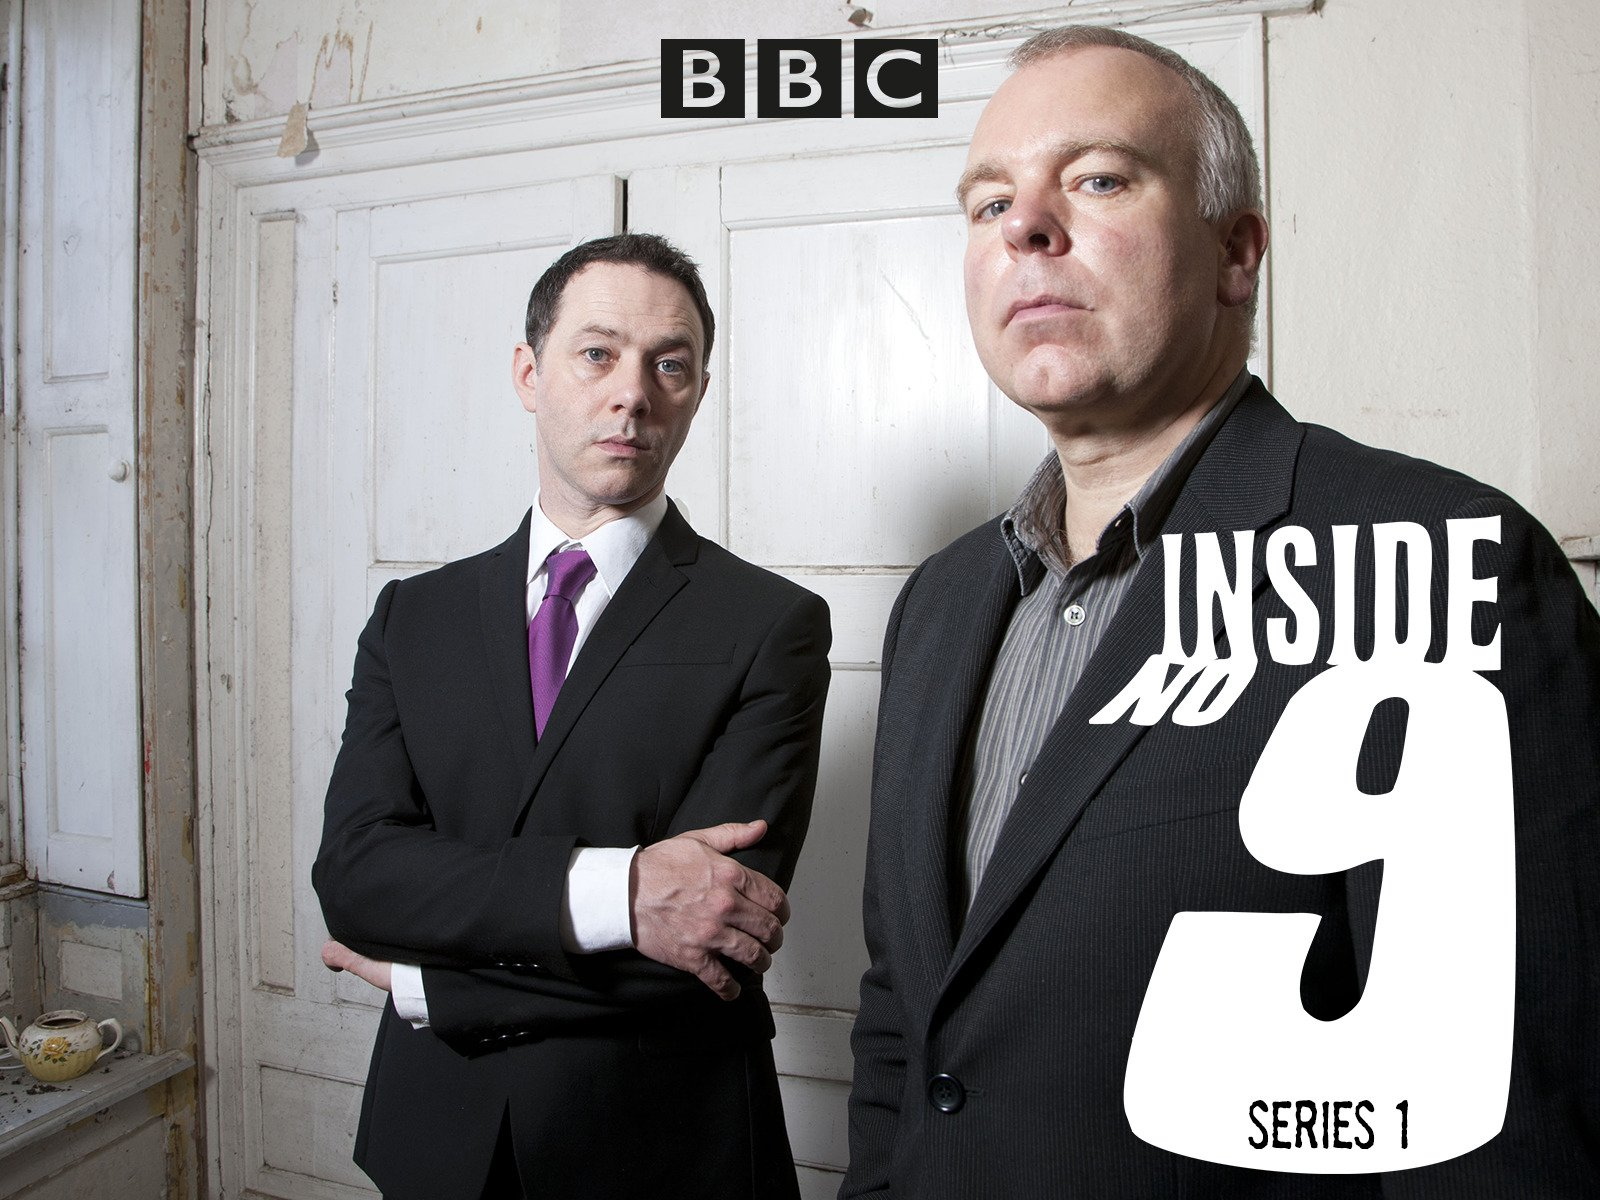 Inside No 9 Season 1 - Season 1